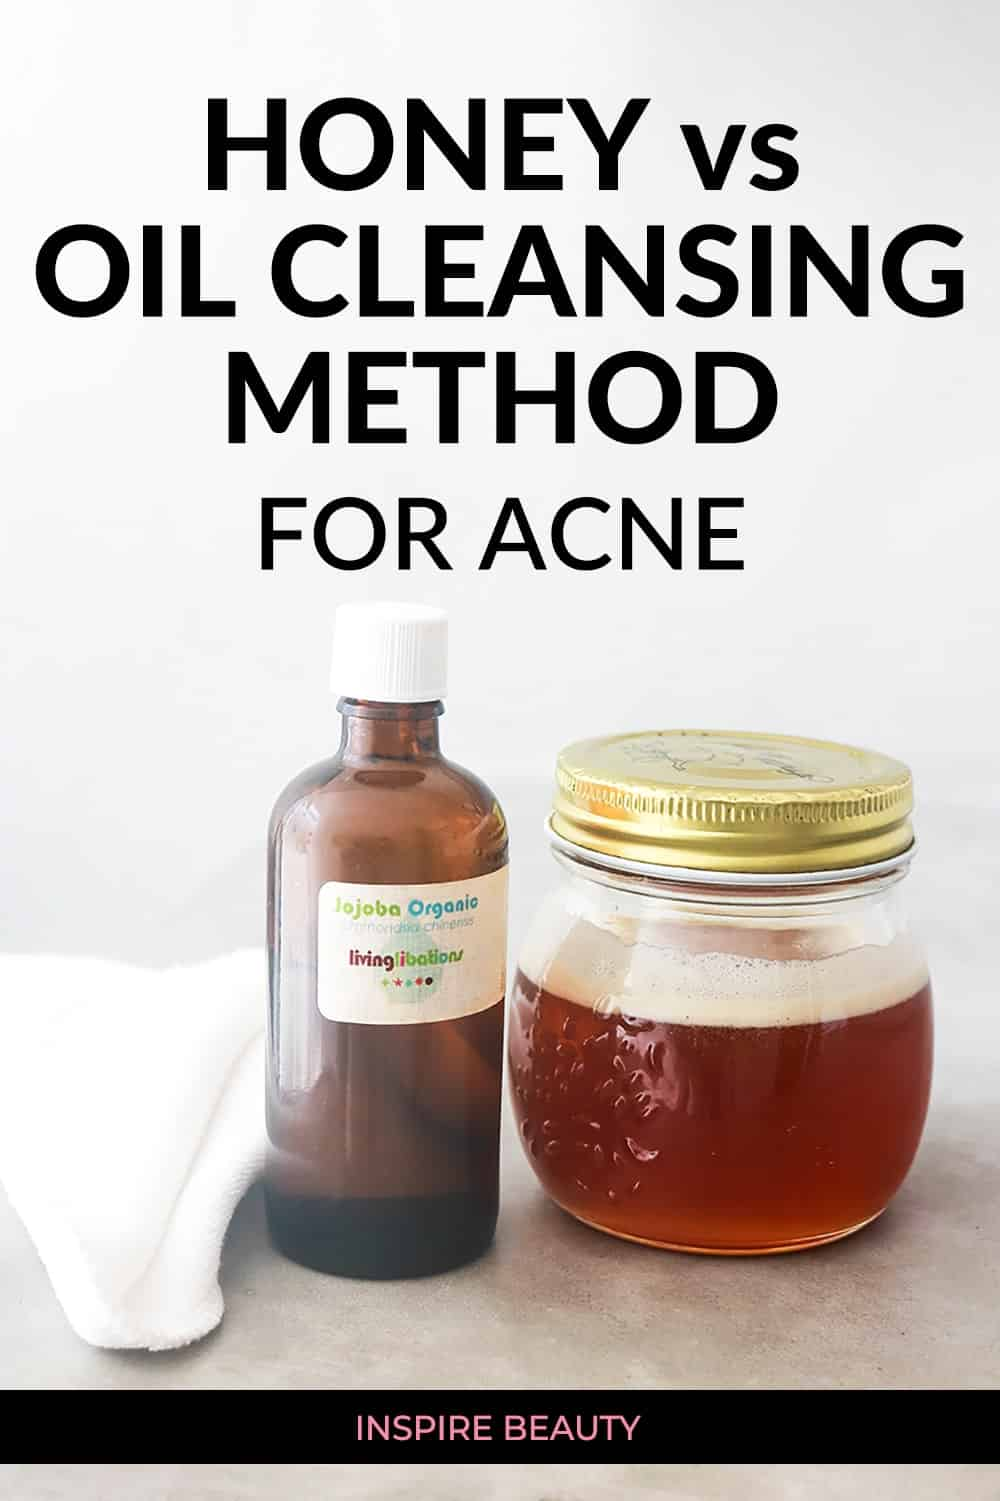 Honey vs Oil Cleansing Method for acne, find out which cleanser is the best for acne prone skin